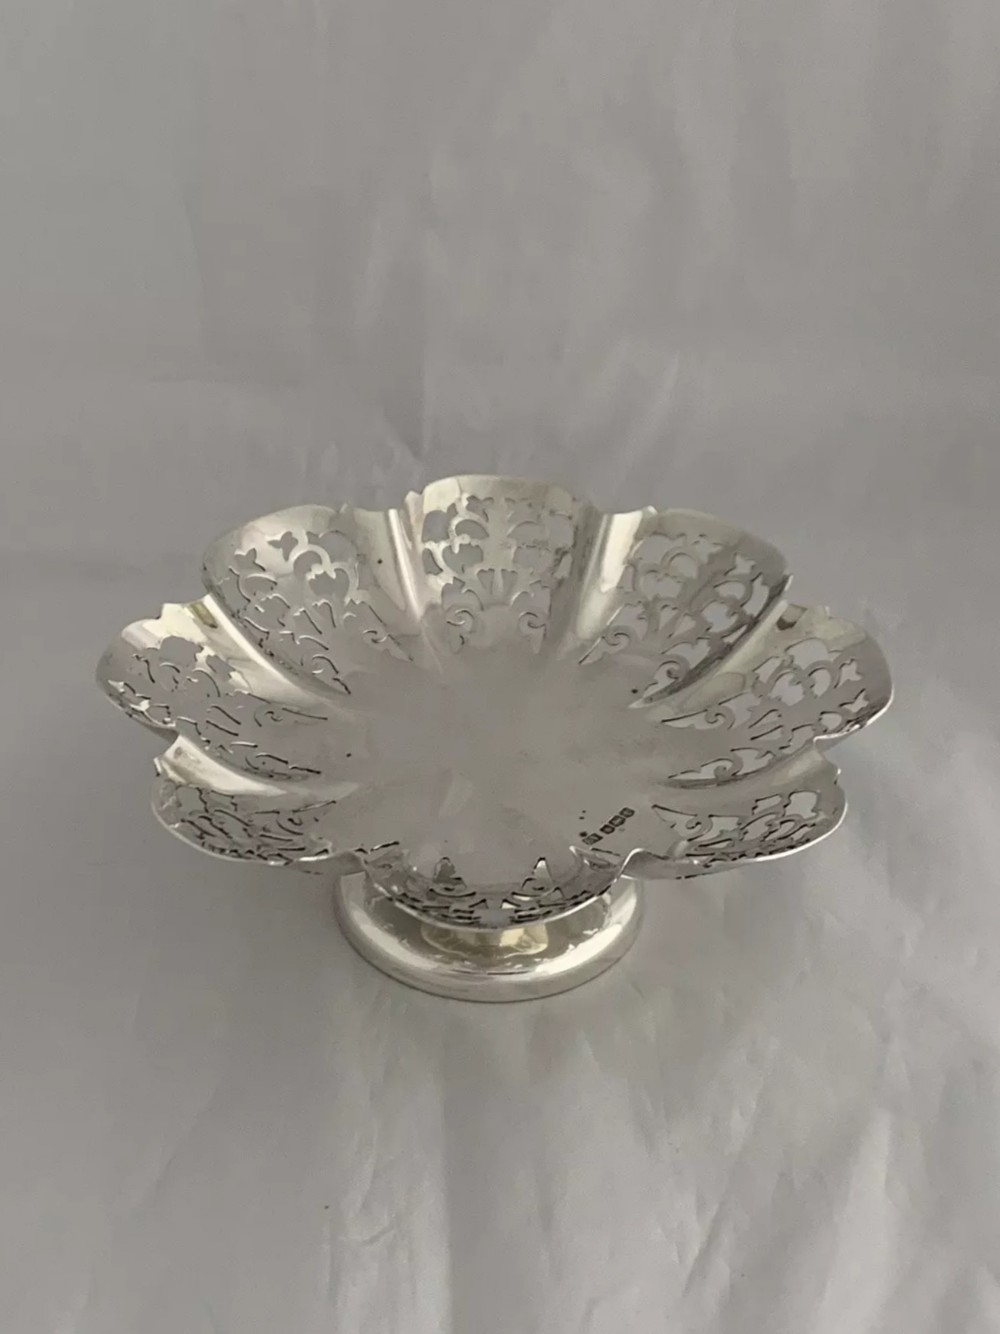 antique silver pierced dish or bowl 1936 sheffield emile viner 15cm diameter